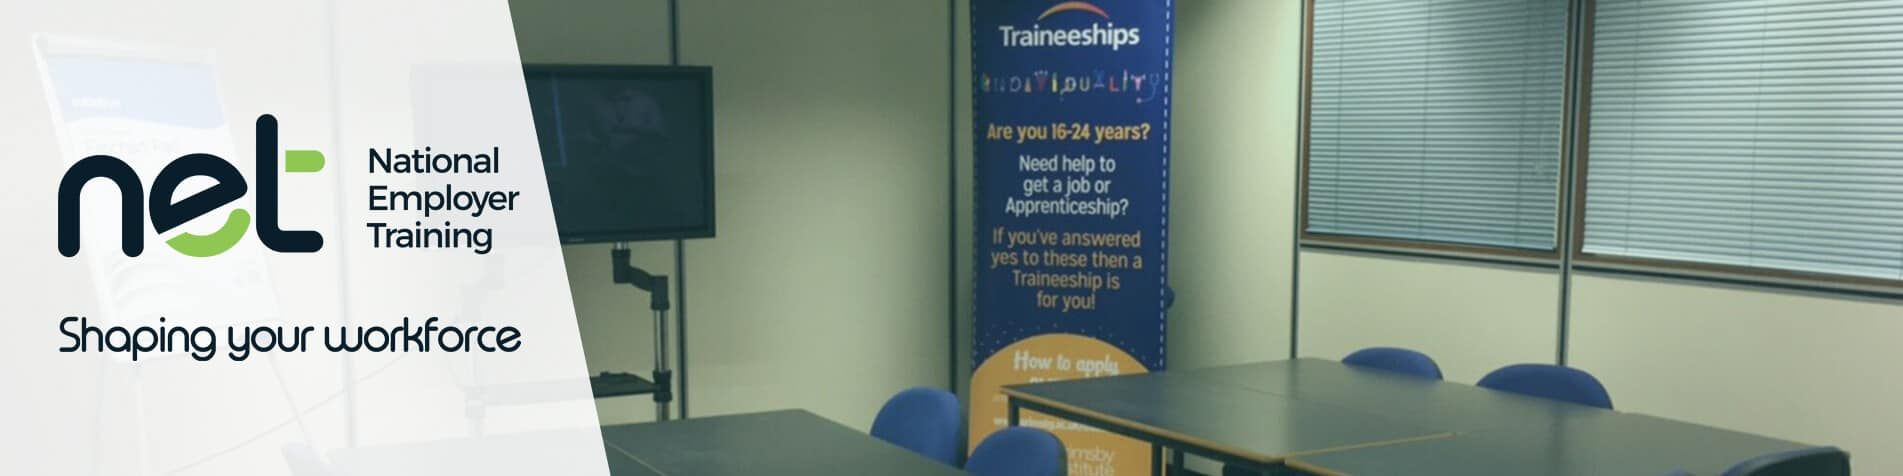 About National Employer Training